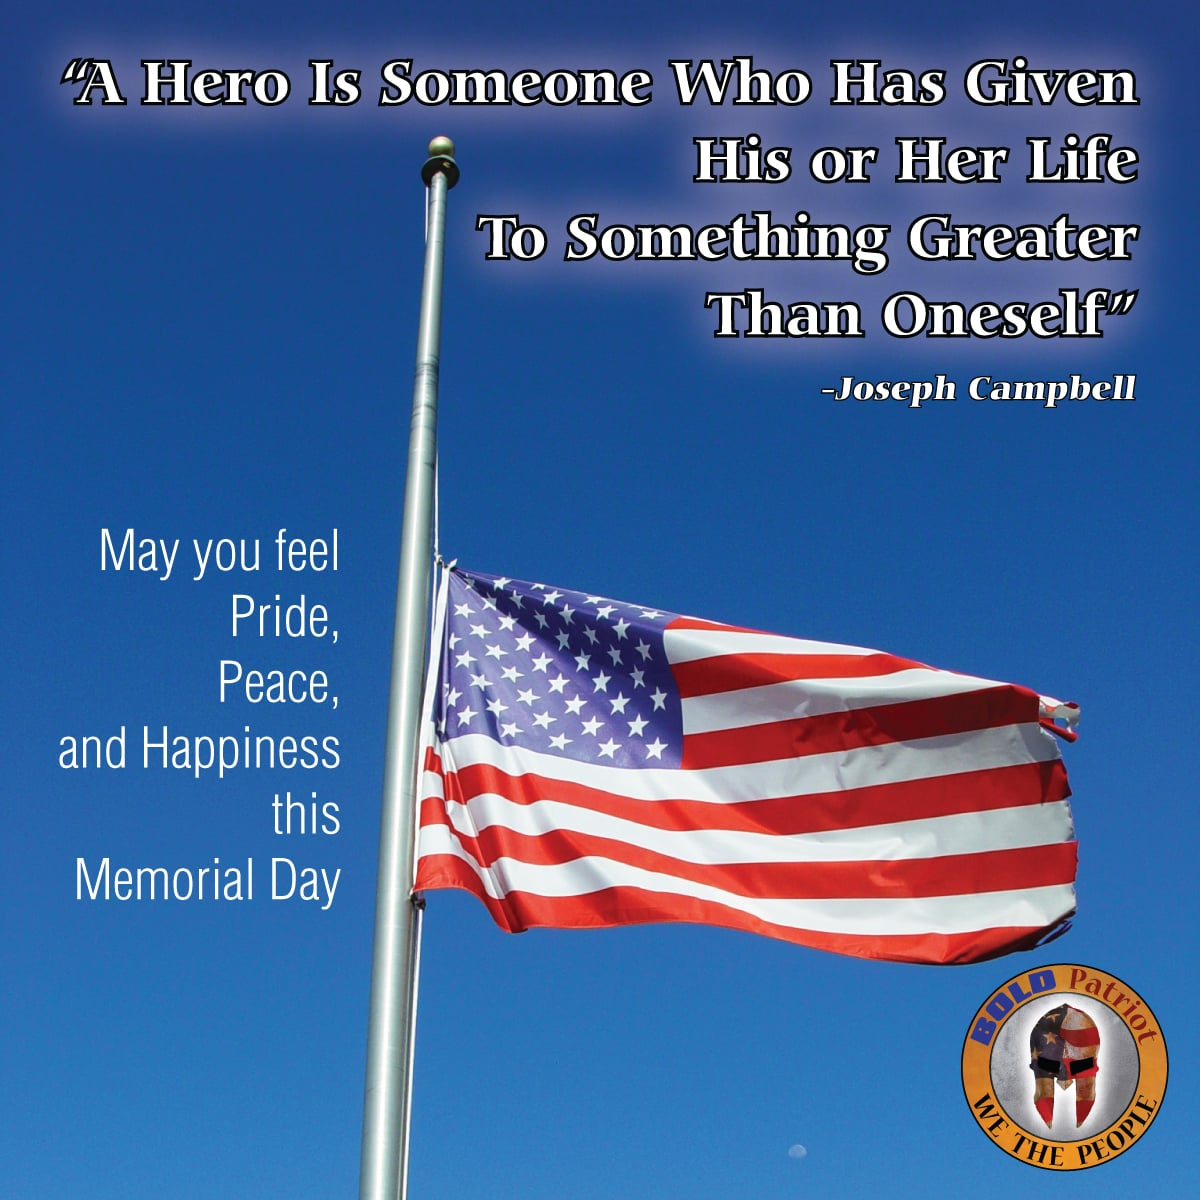 May you have Peace on this Memorial Day.